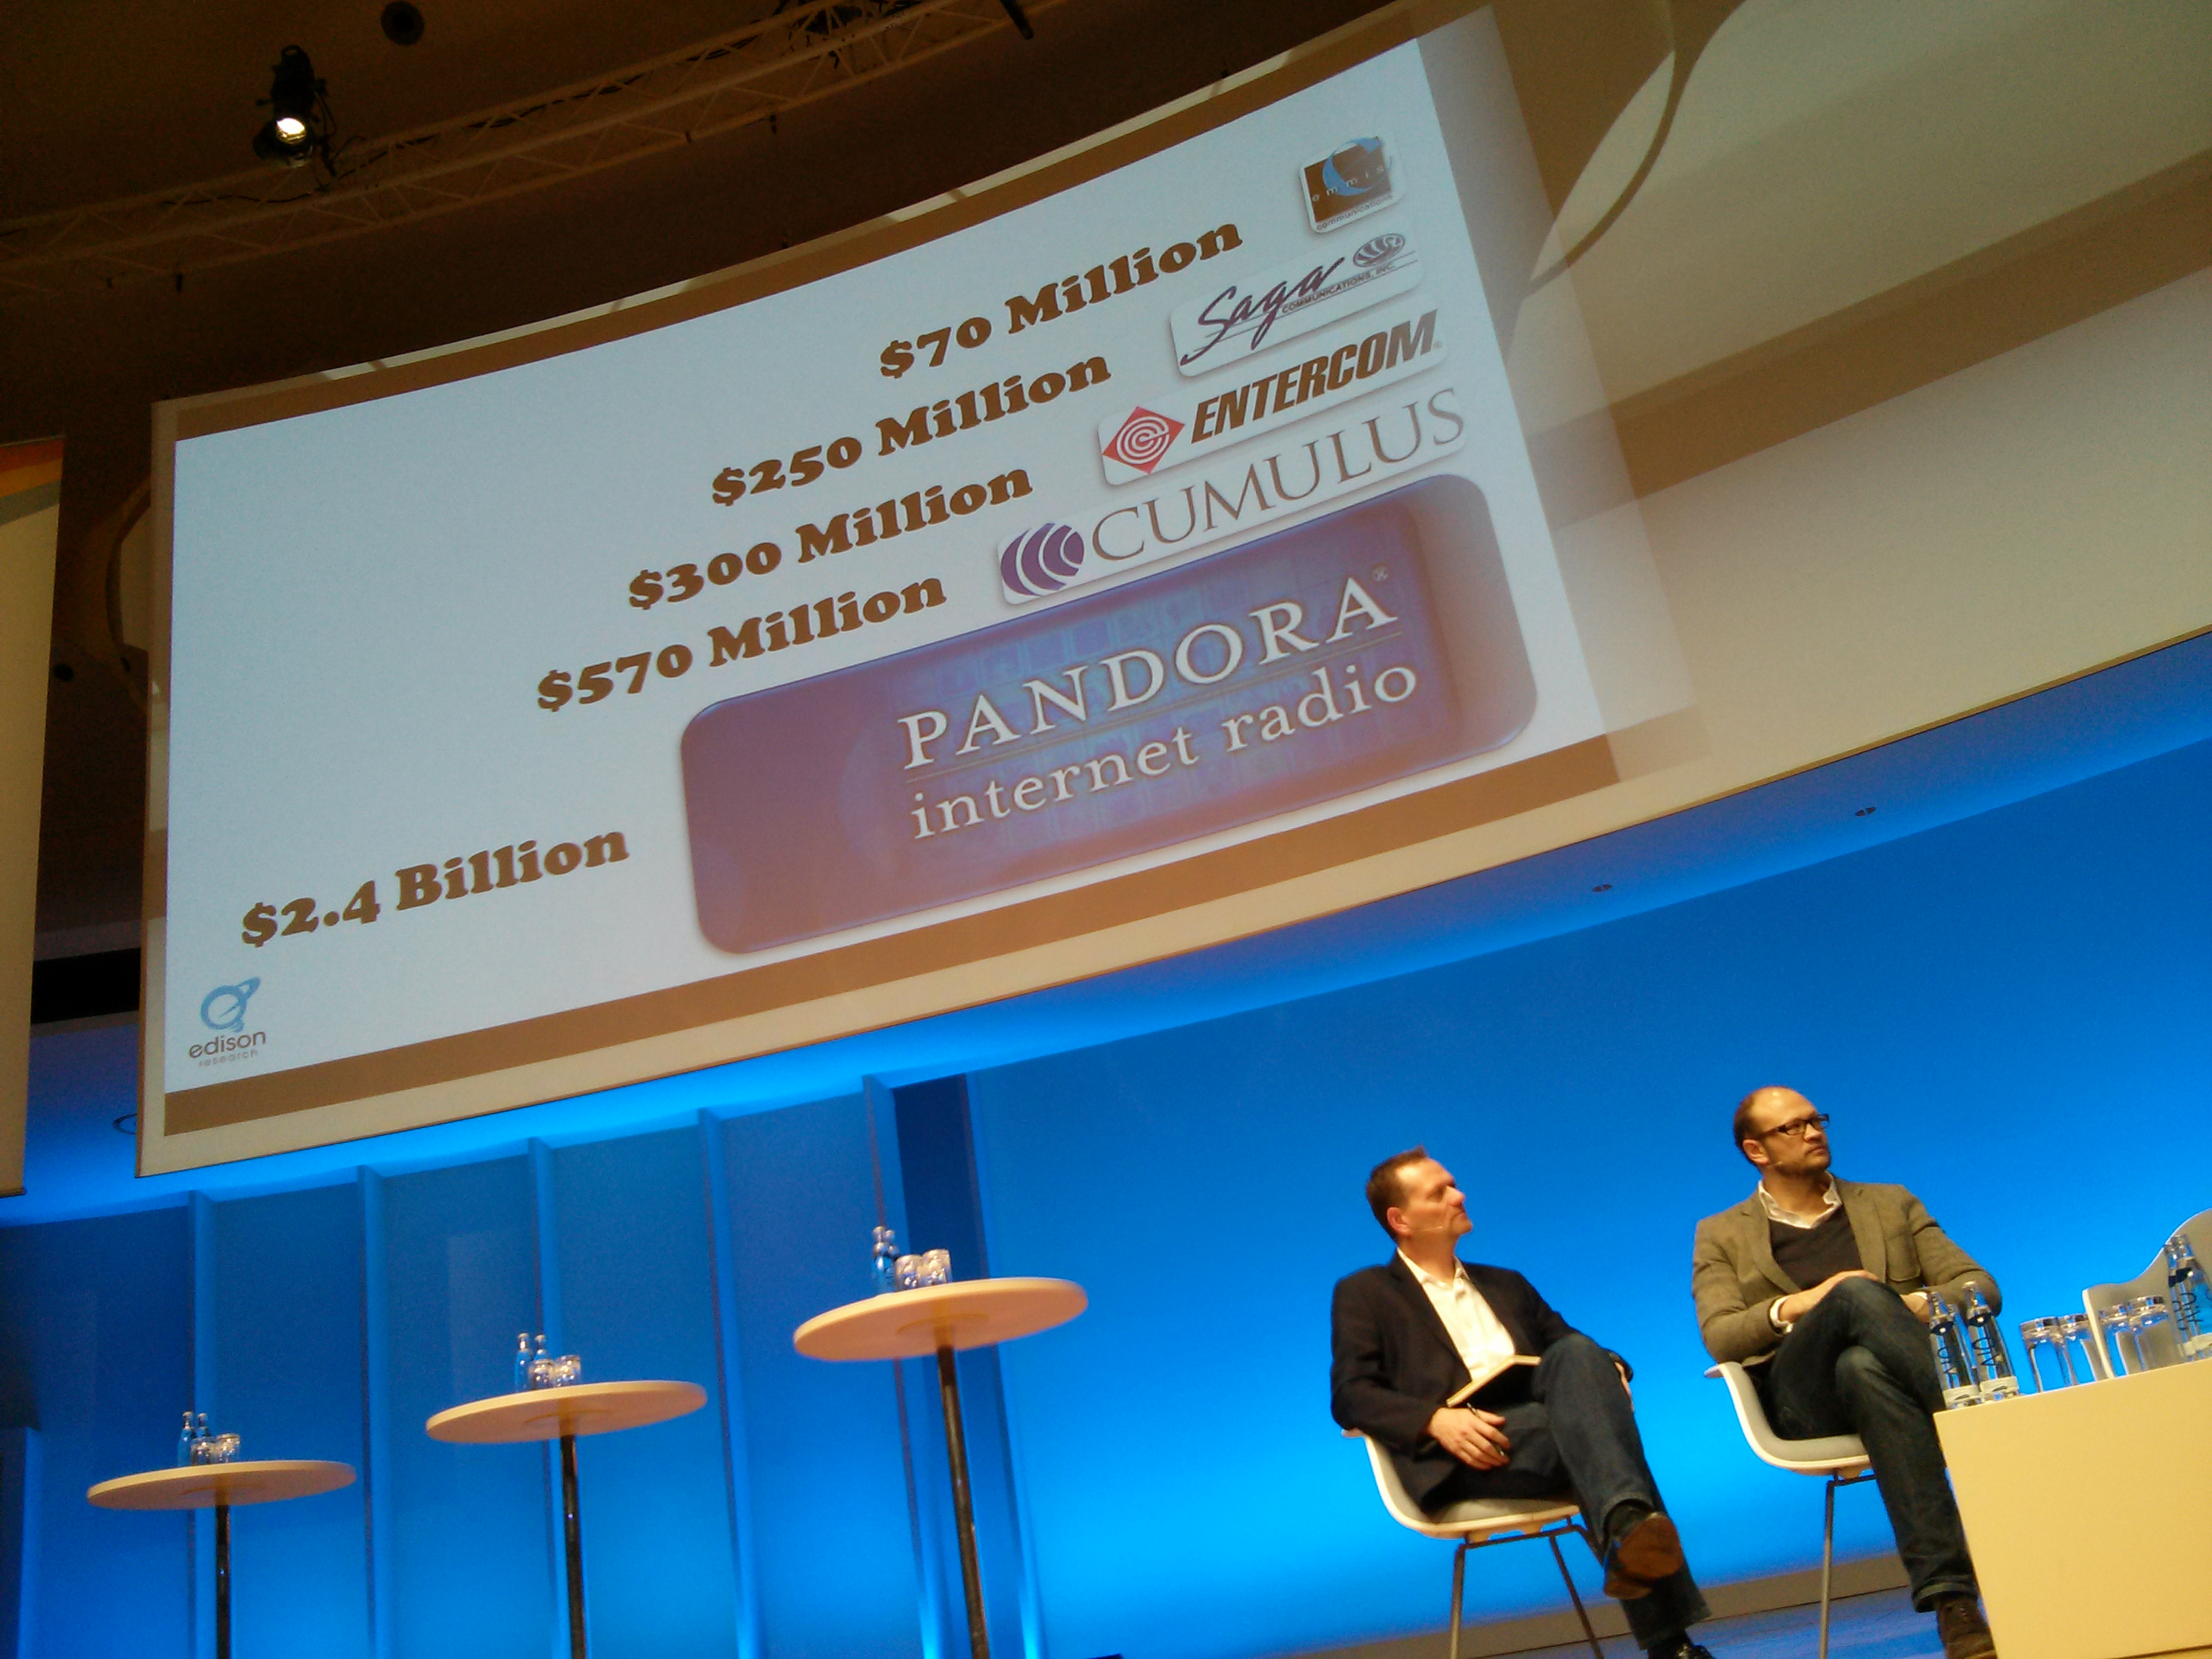 Market value of Pandora compared to US radio networks at Radio Days Europe 2013